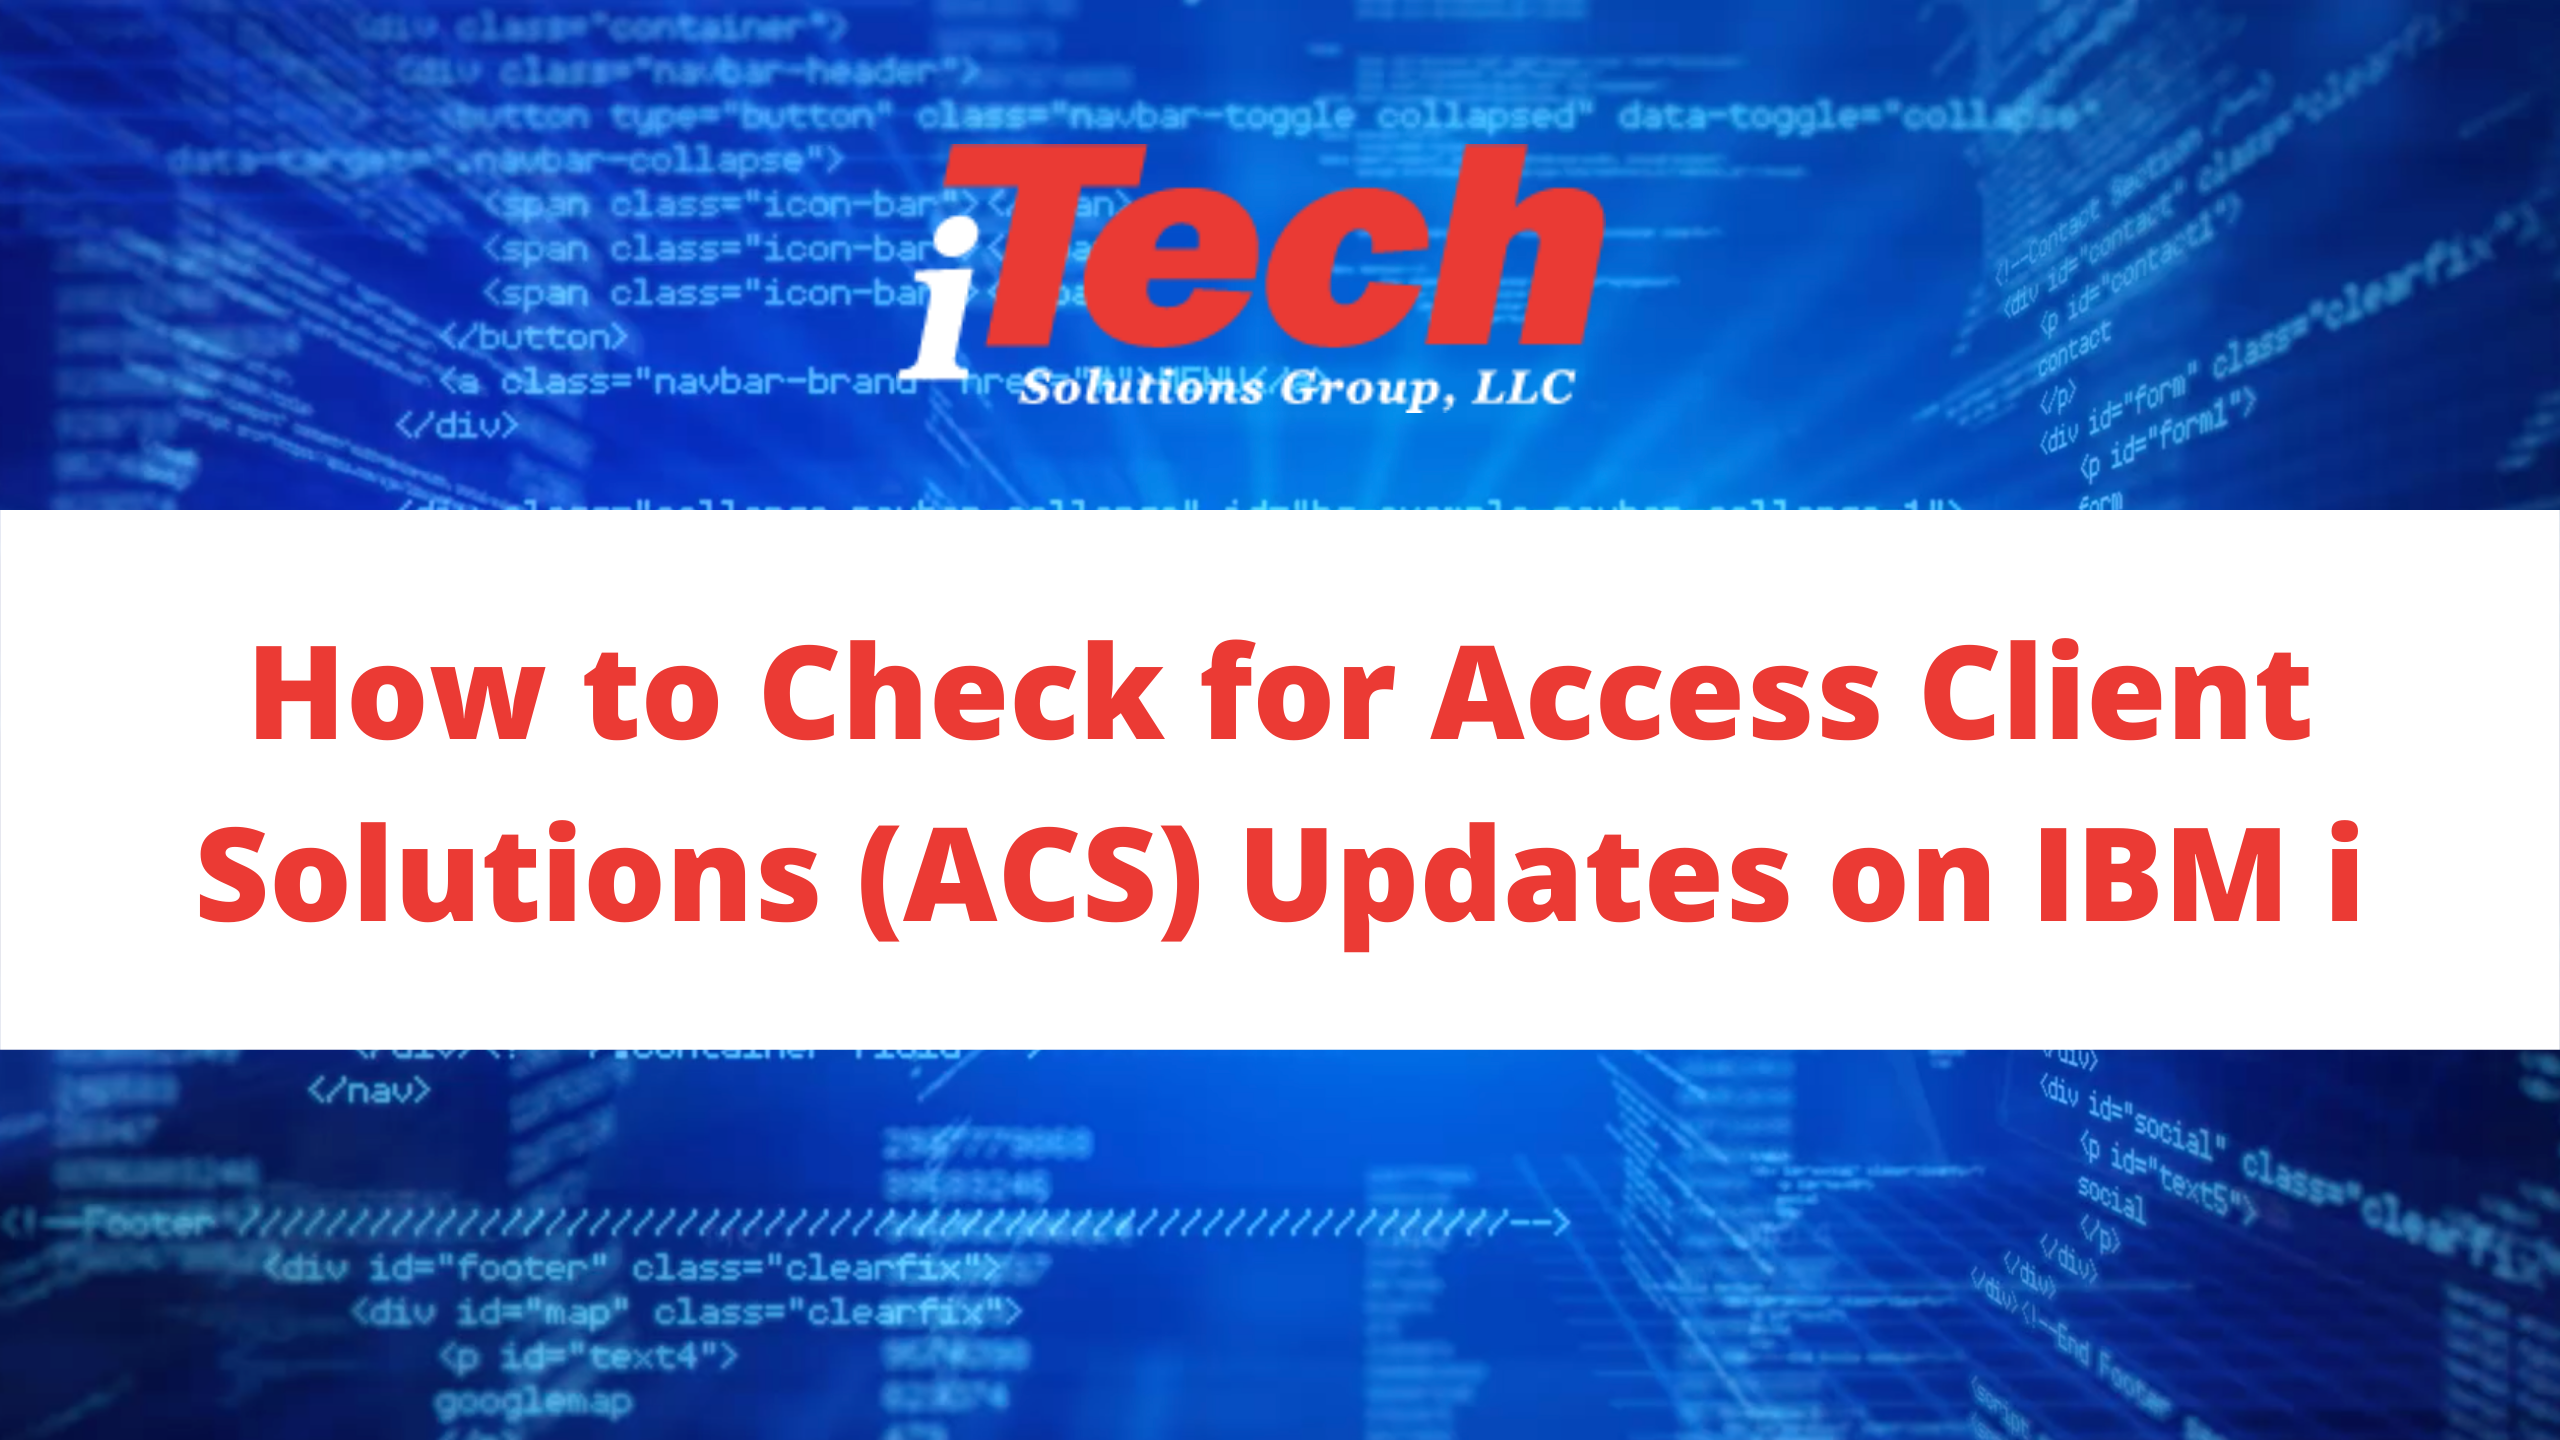 How to Check for Access Client Solutions (ACS) Updates on IBM i